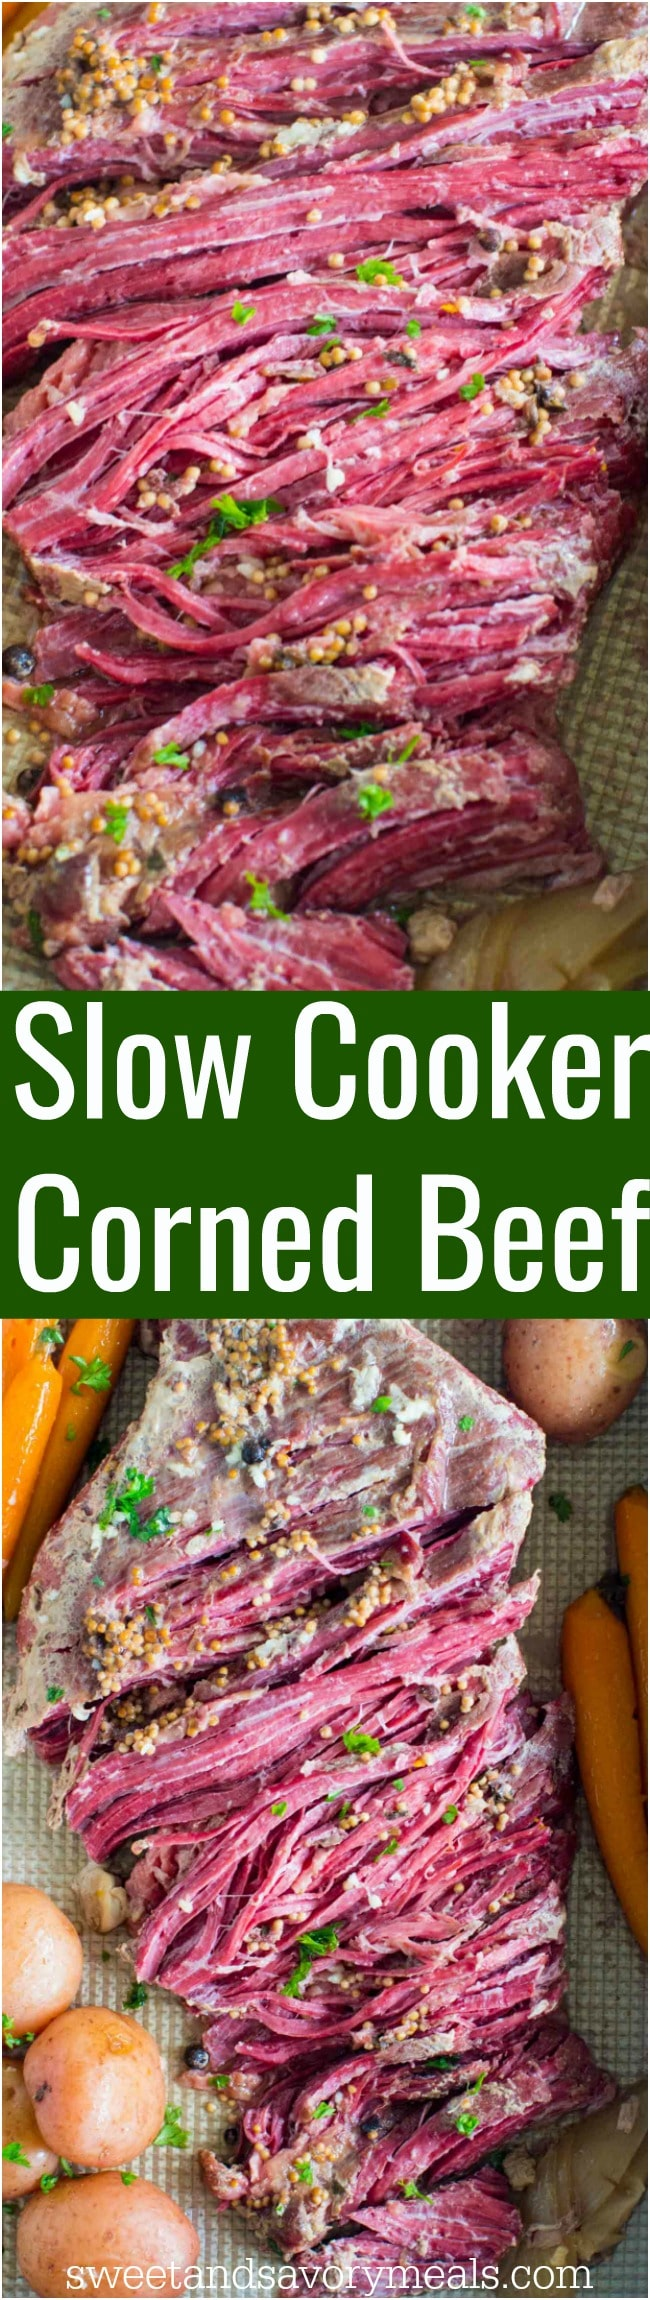 Tender Slow Cooker Corned Beef is the easiest recipes ever. All you have to do is add all the ingredients to the slow cooker and let it work its magic.